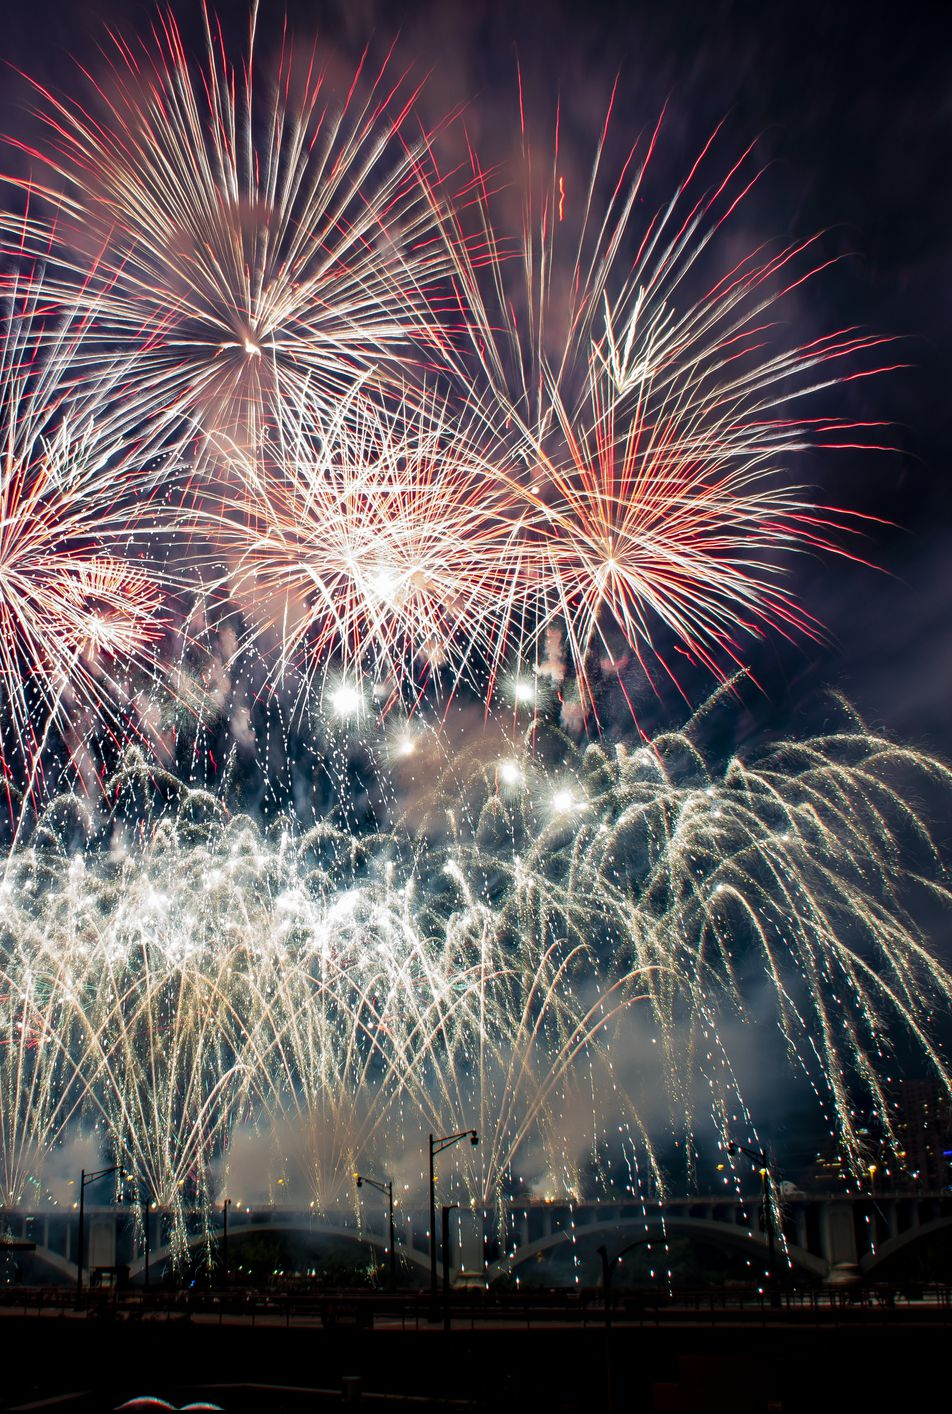 Best Places To Watch 4th Of July Fireworks You Need To Know 03 best places to watch 4th of july fireworks Best Places To Watch 4th Of July Fireworks You Need To Know Best Places To Watch 4th Of July Fireworks You Need To Know 03